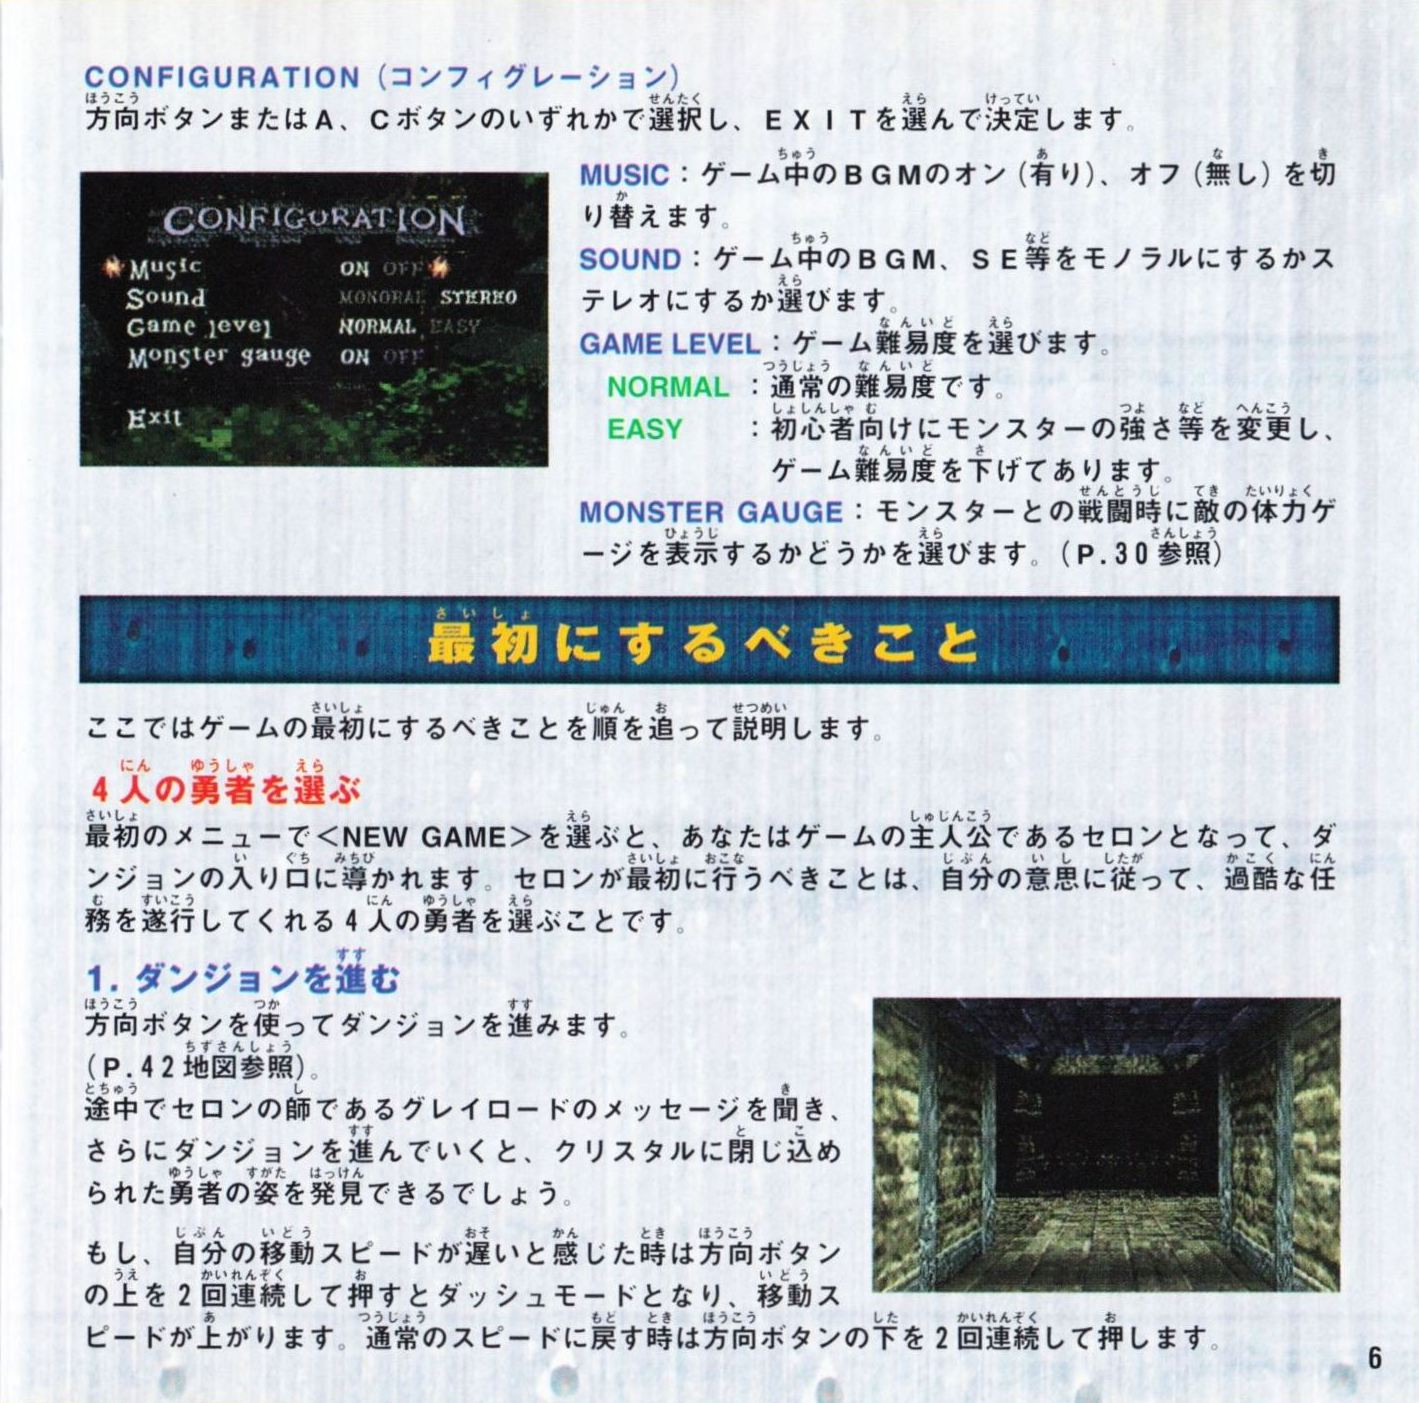 Game - Dungeon Master Nexus - JP - Sega Saturn - Booklet - Page 007 - Scan